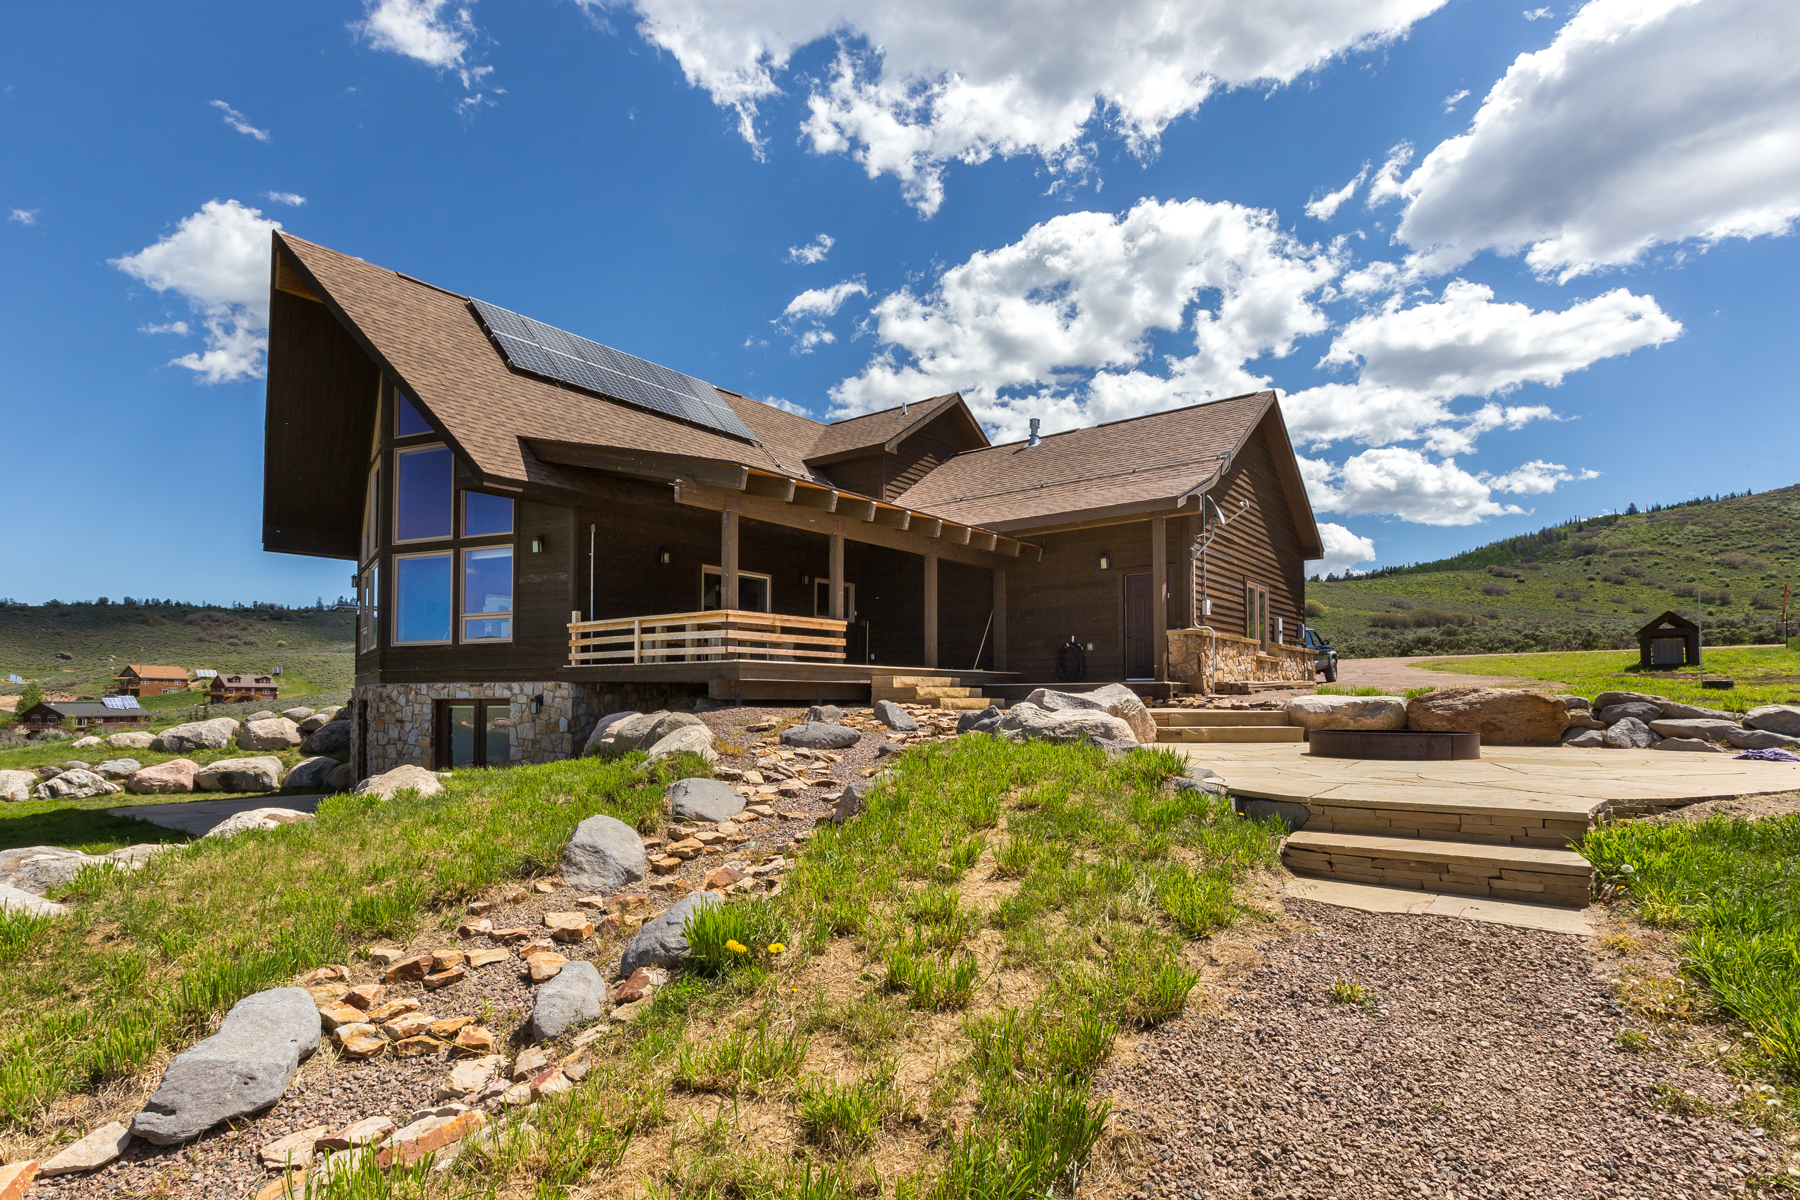 Single Family Home for Sale at Stagecoach Retreat 24375 Arapahoe Road Oak Creek, Colorado 80467 United States